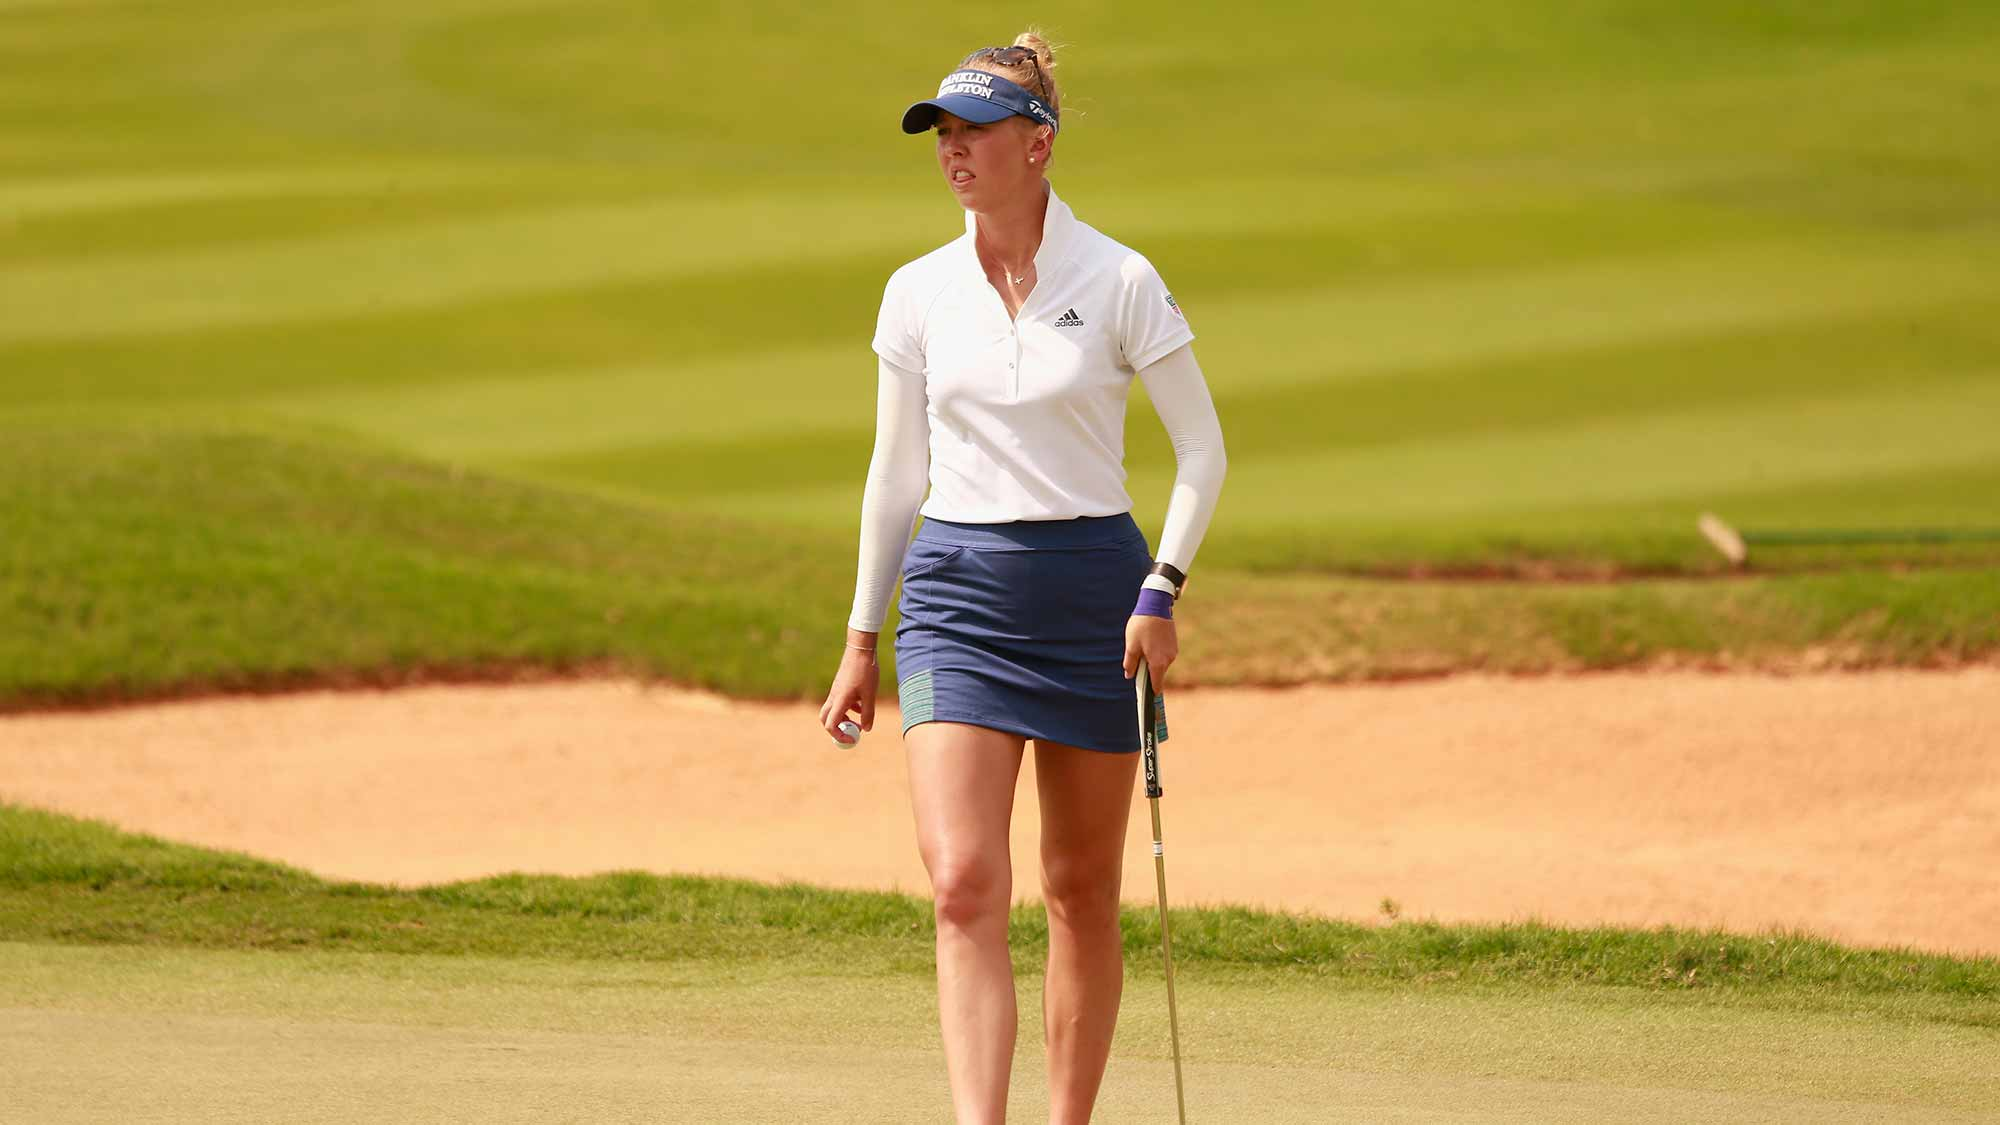 Jessica Korda of United States in action during the final round of Blue Bay LPGA on Day 4